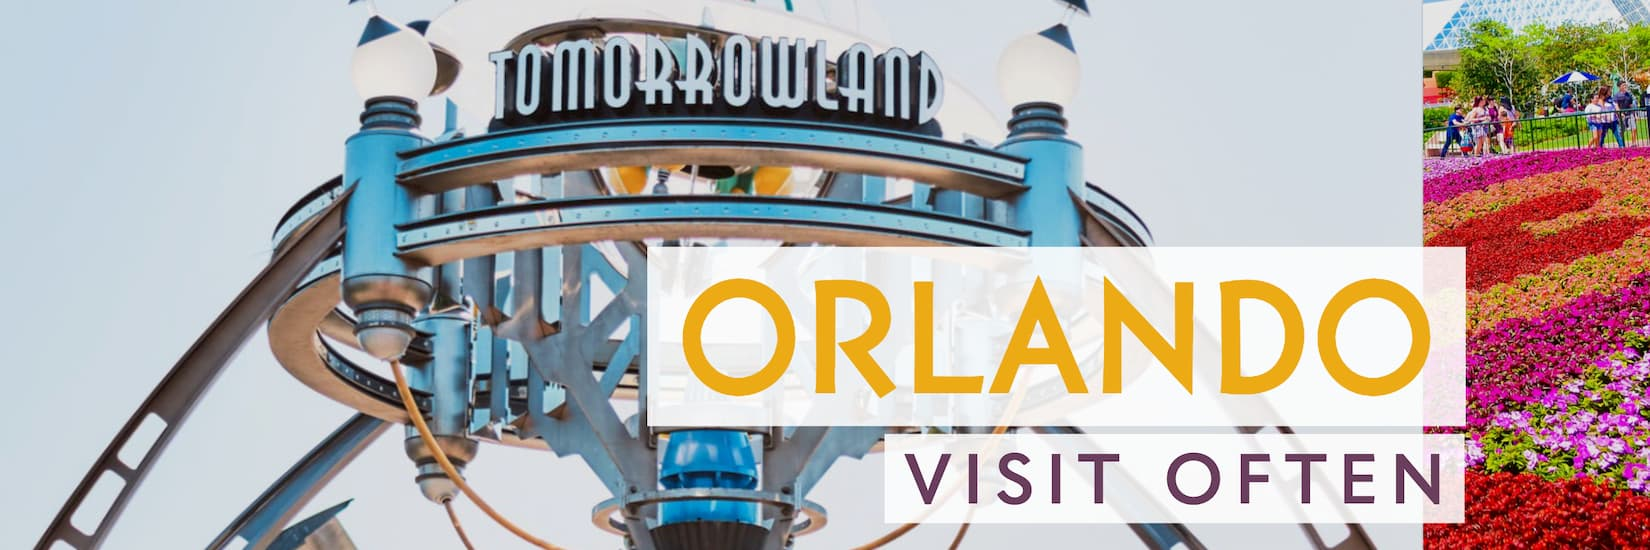 Orlando, one of the top 10 vacation destinations, is a fun dynamic place to live.